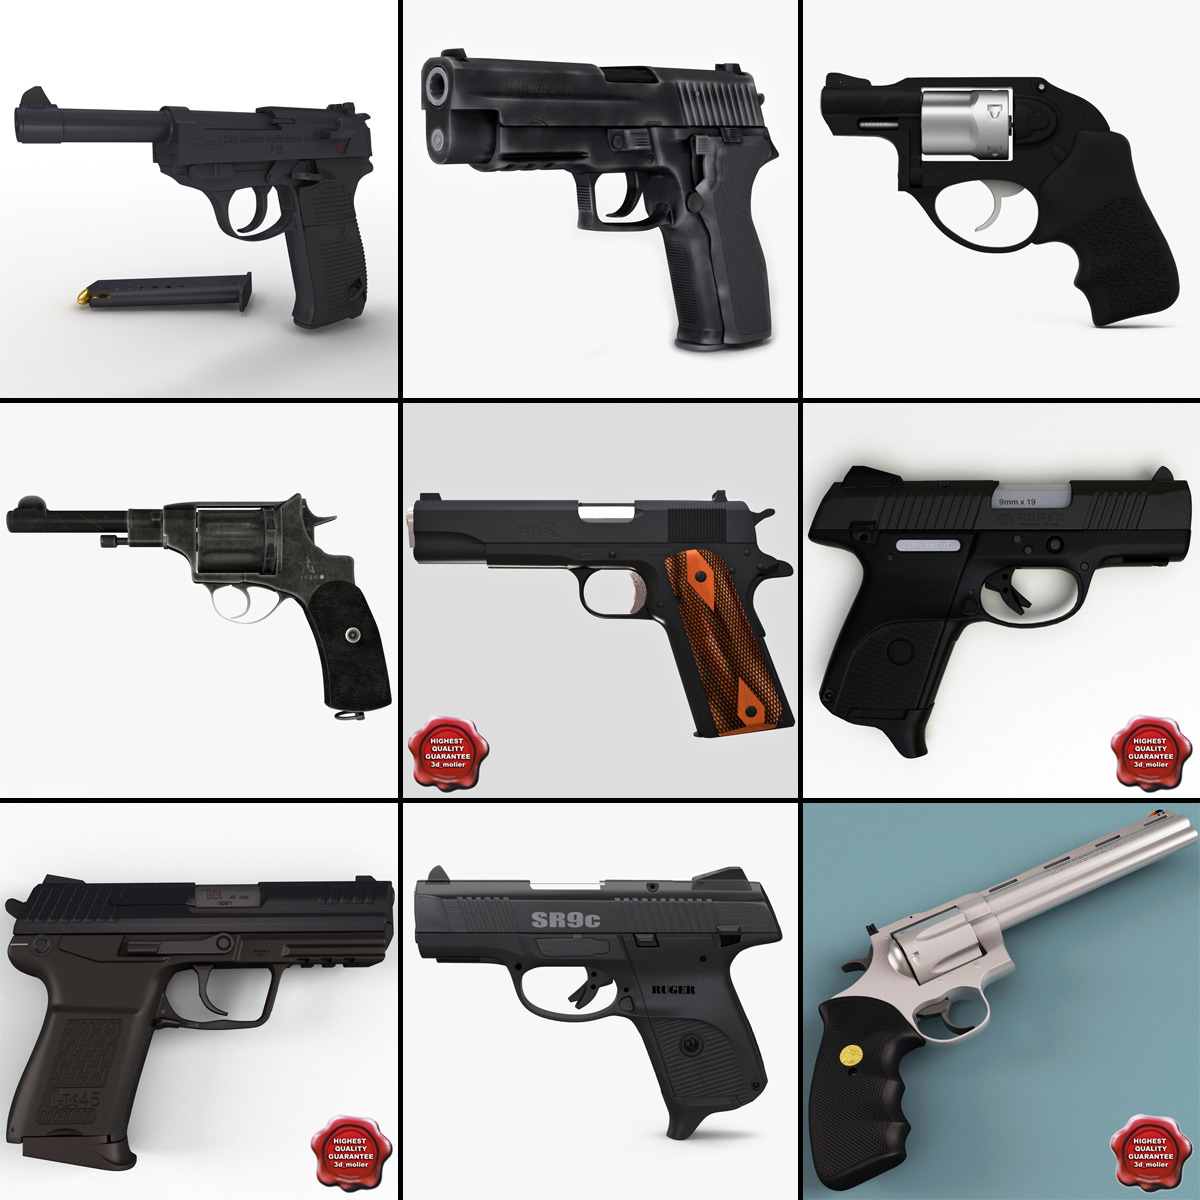 Pistols_Collection_V7_000.jpg